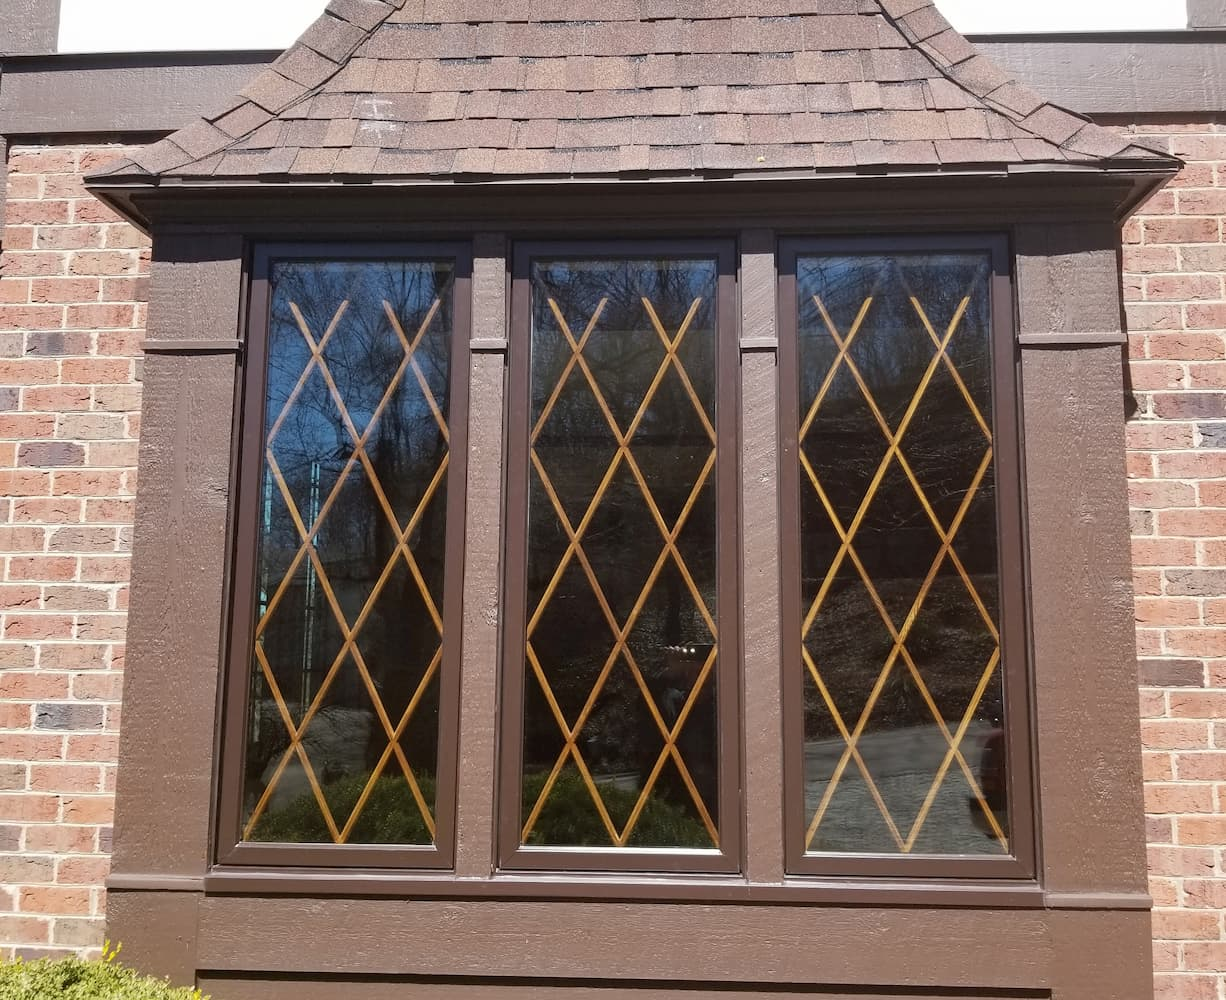 Exterior view of three new wood windows with diamond grille pattern